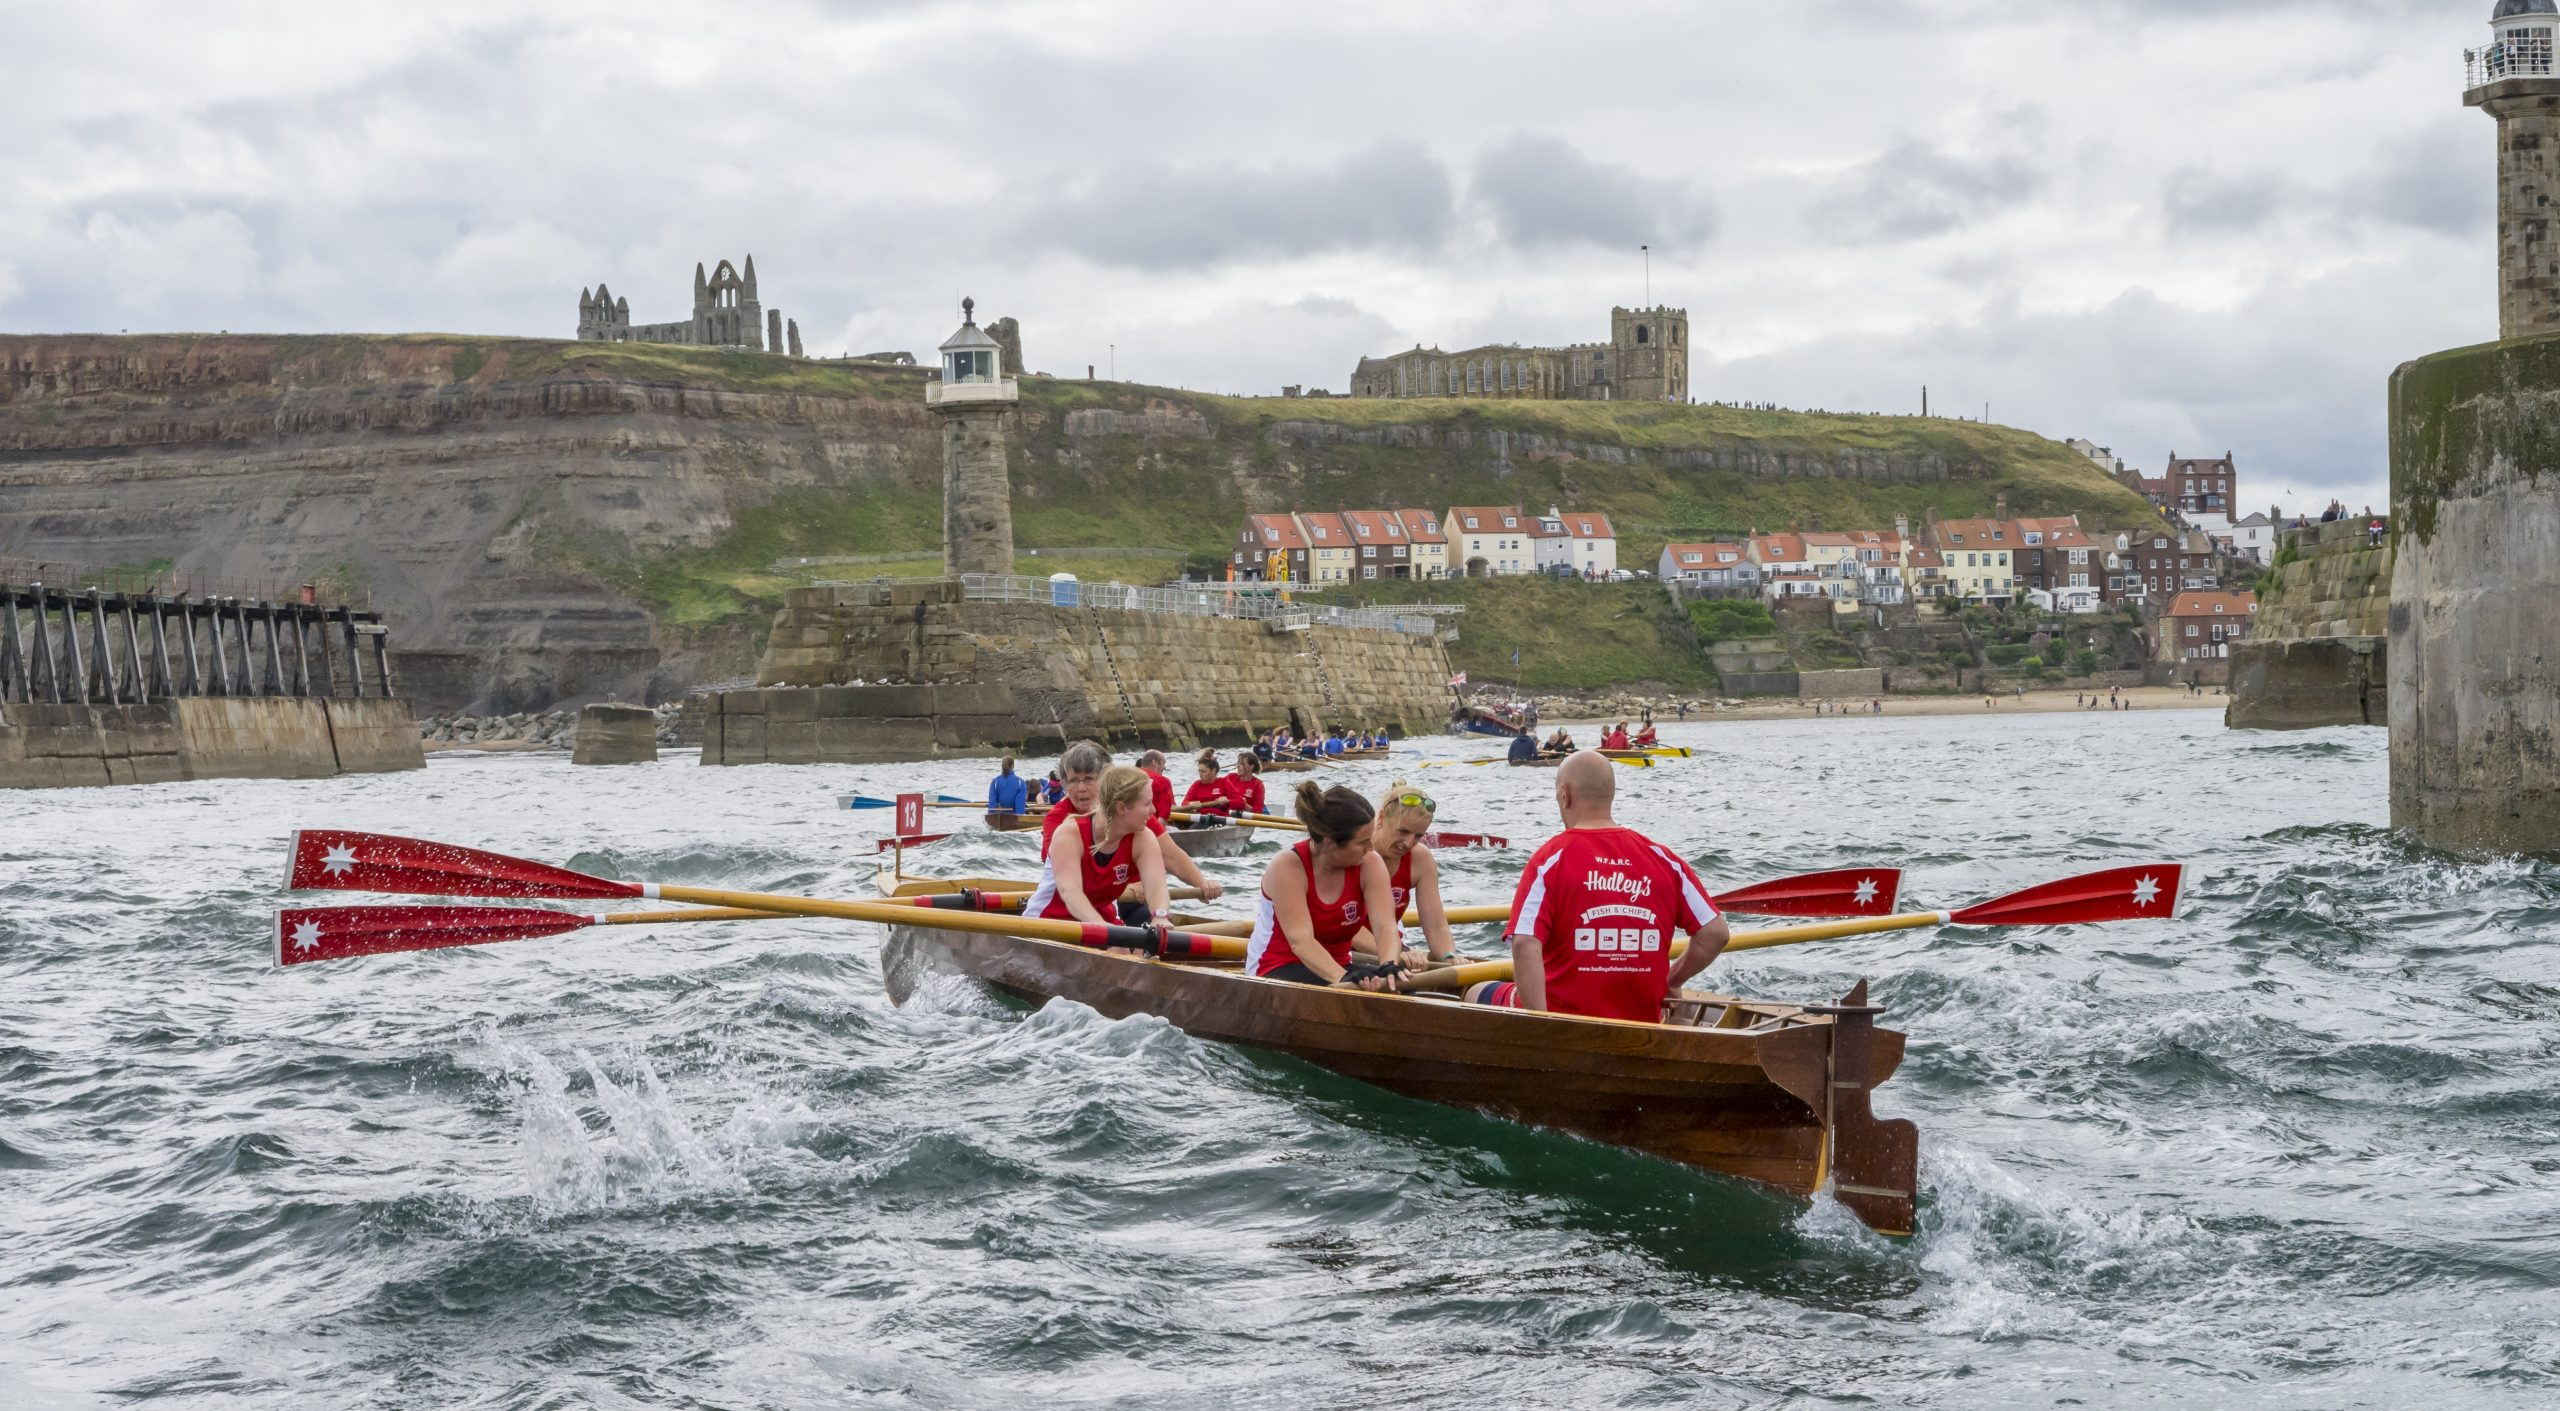 Whitby regatta rowing boats in Whitby Harbour